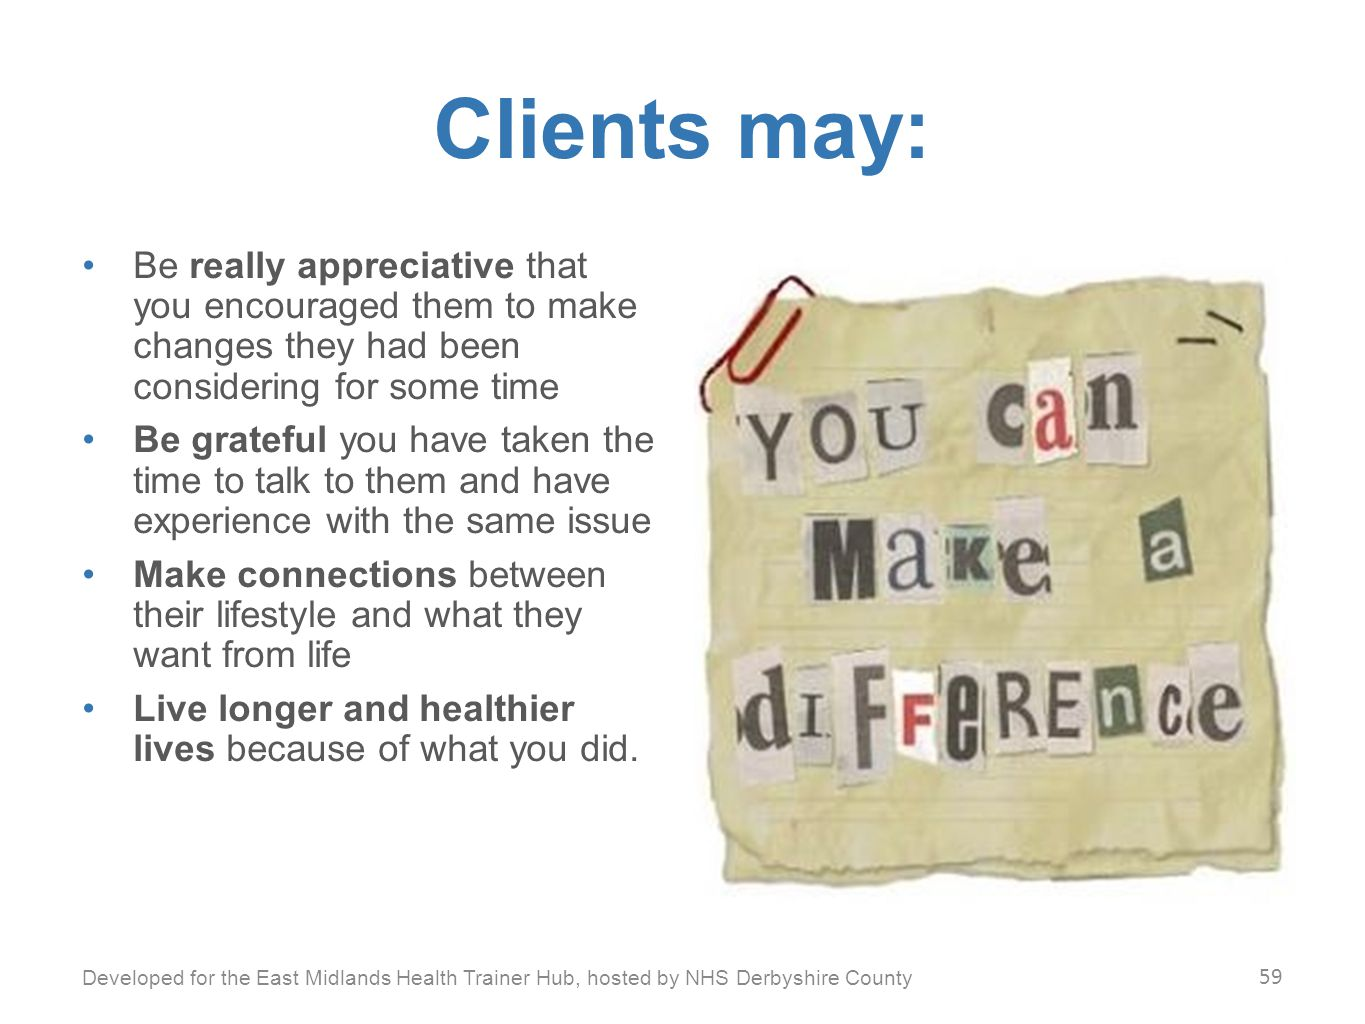 Clients may: Be really appreciative that you encouraged them to make changes they had been considering for some time Be grateful you have taken the time to talk to them and have experience with the same issue Make connections between their lifestyle and what they want from life Live longer and healthier lives because of what you did.